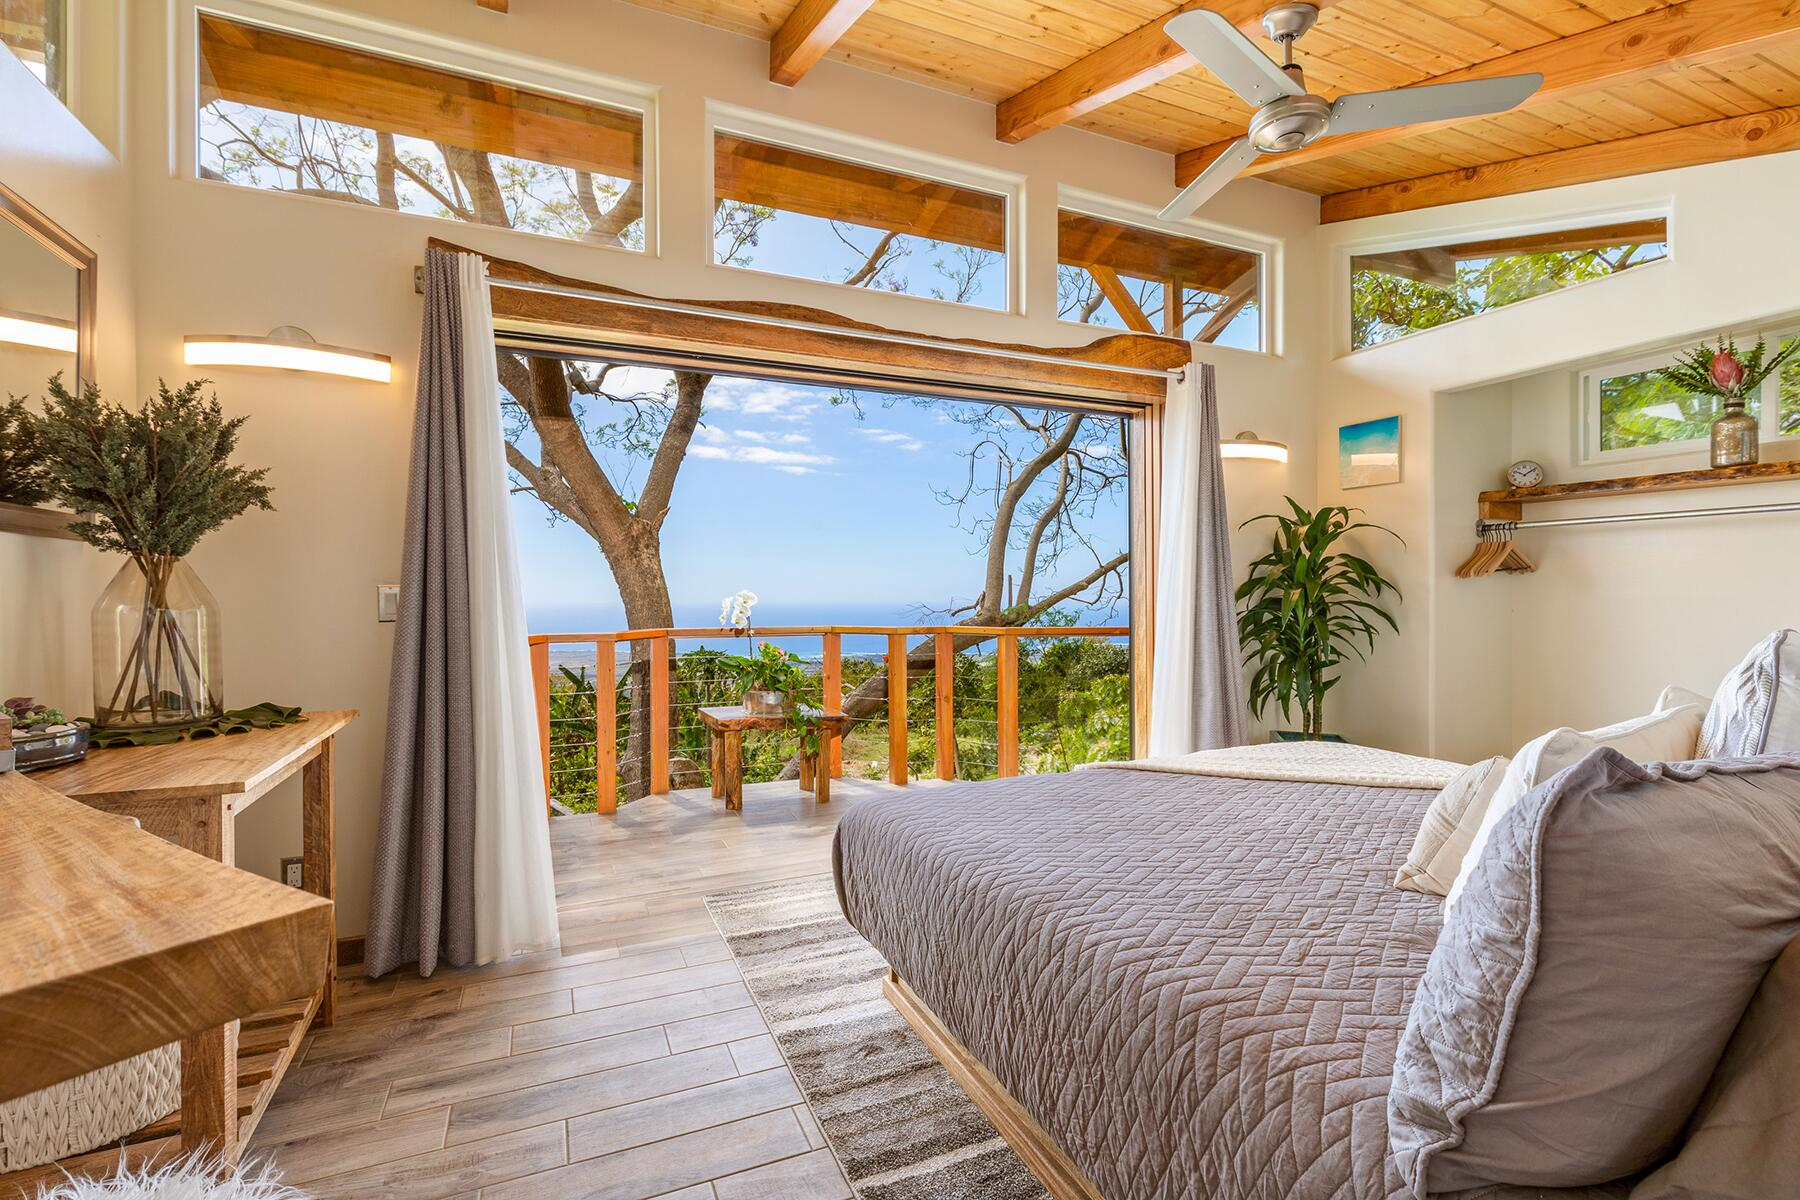 Start Planning Your Summer Vacation at These 9 Waterfront Airbnbs